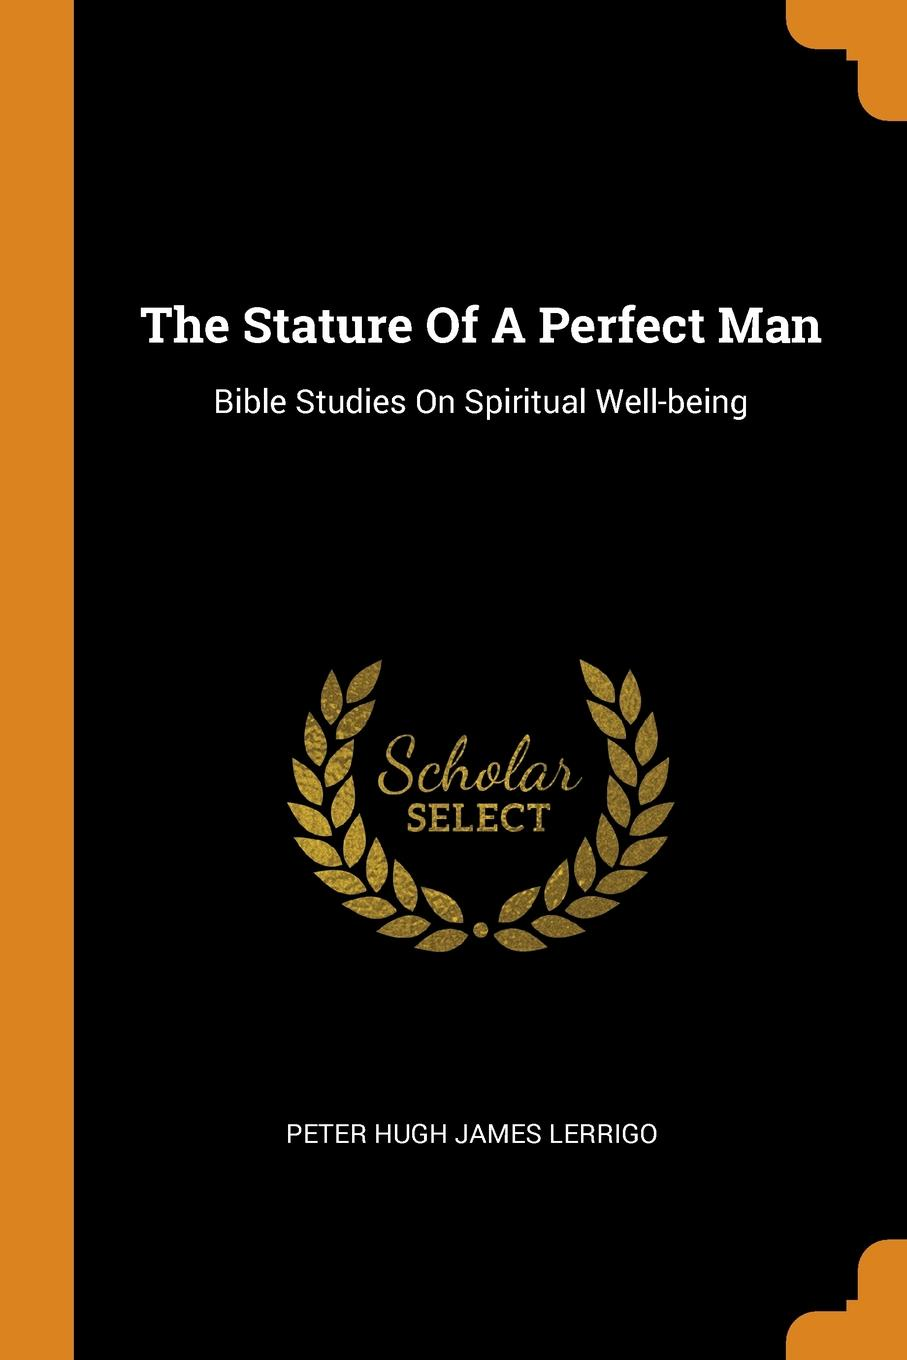 The Stature Of A Perfect Man. Bible Studies On Spiritual Well-being